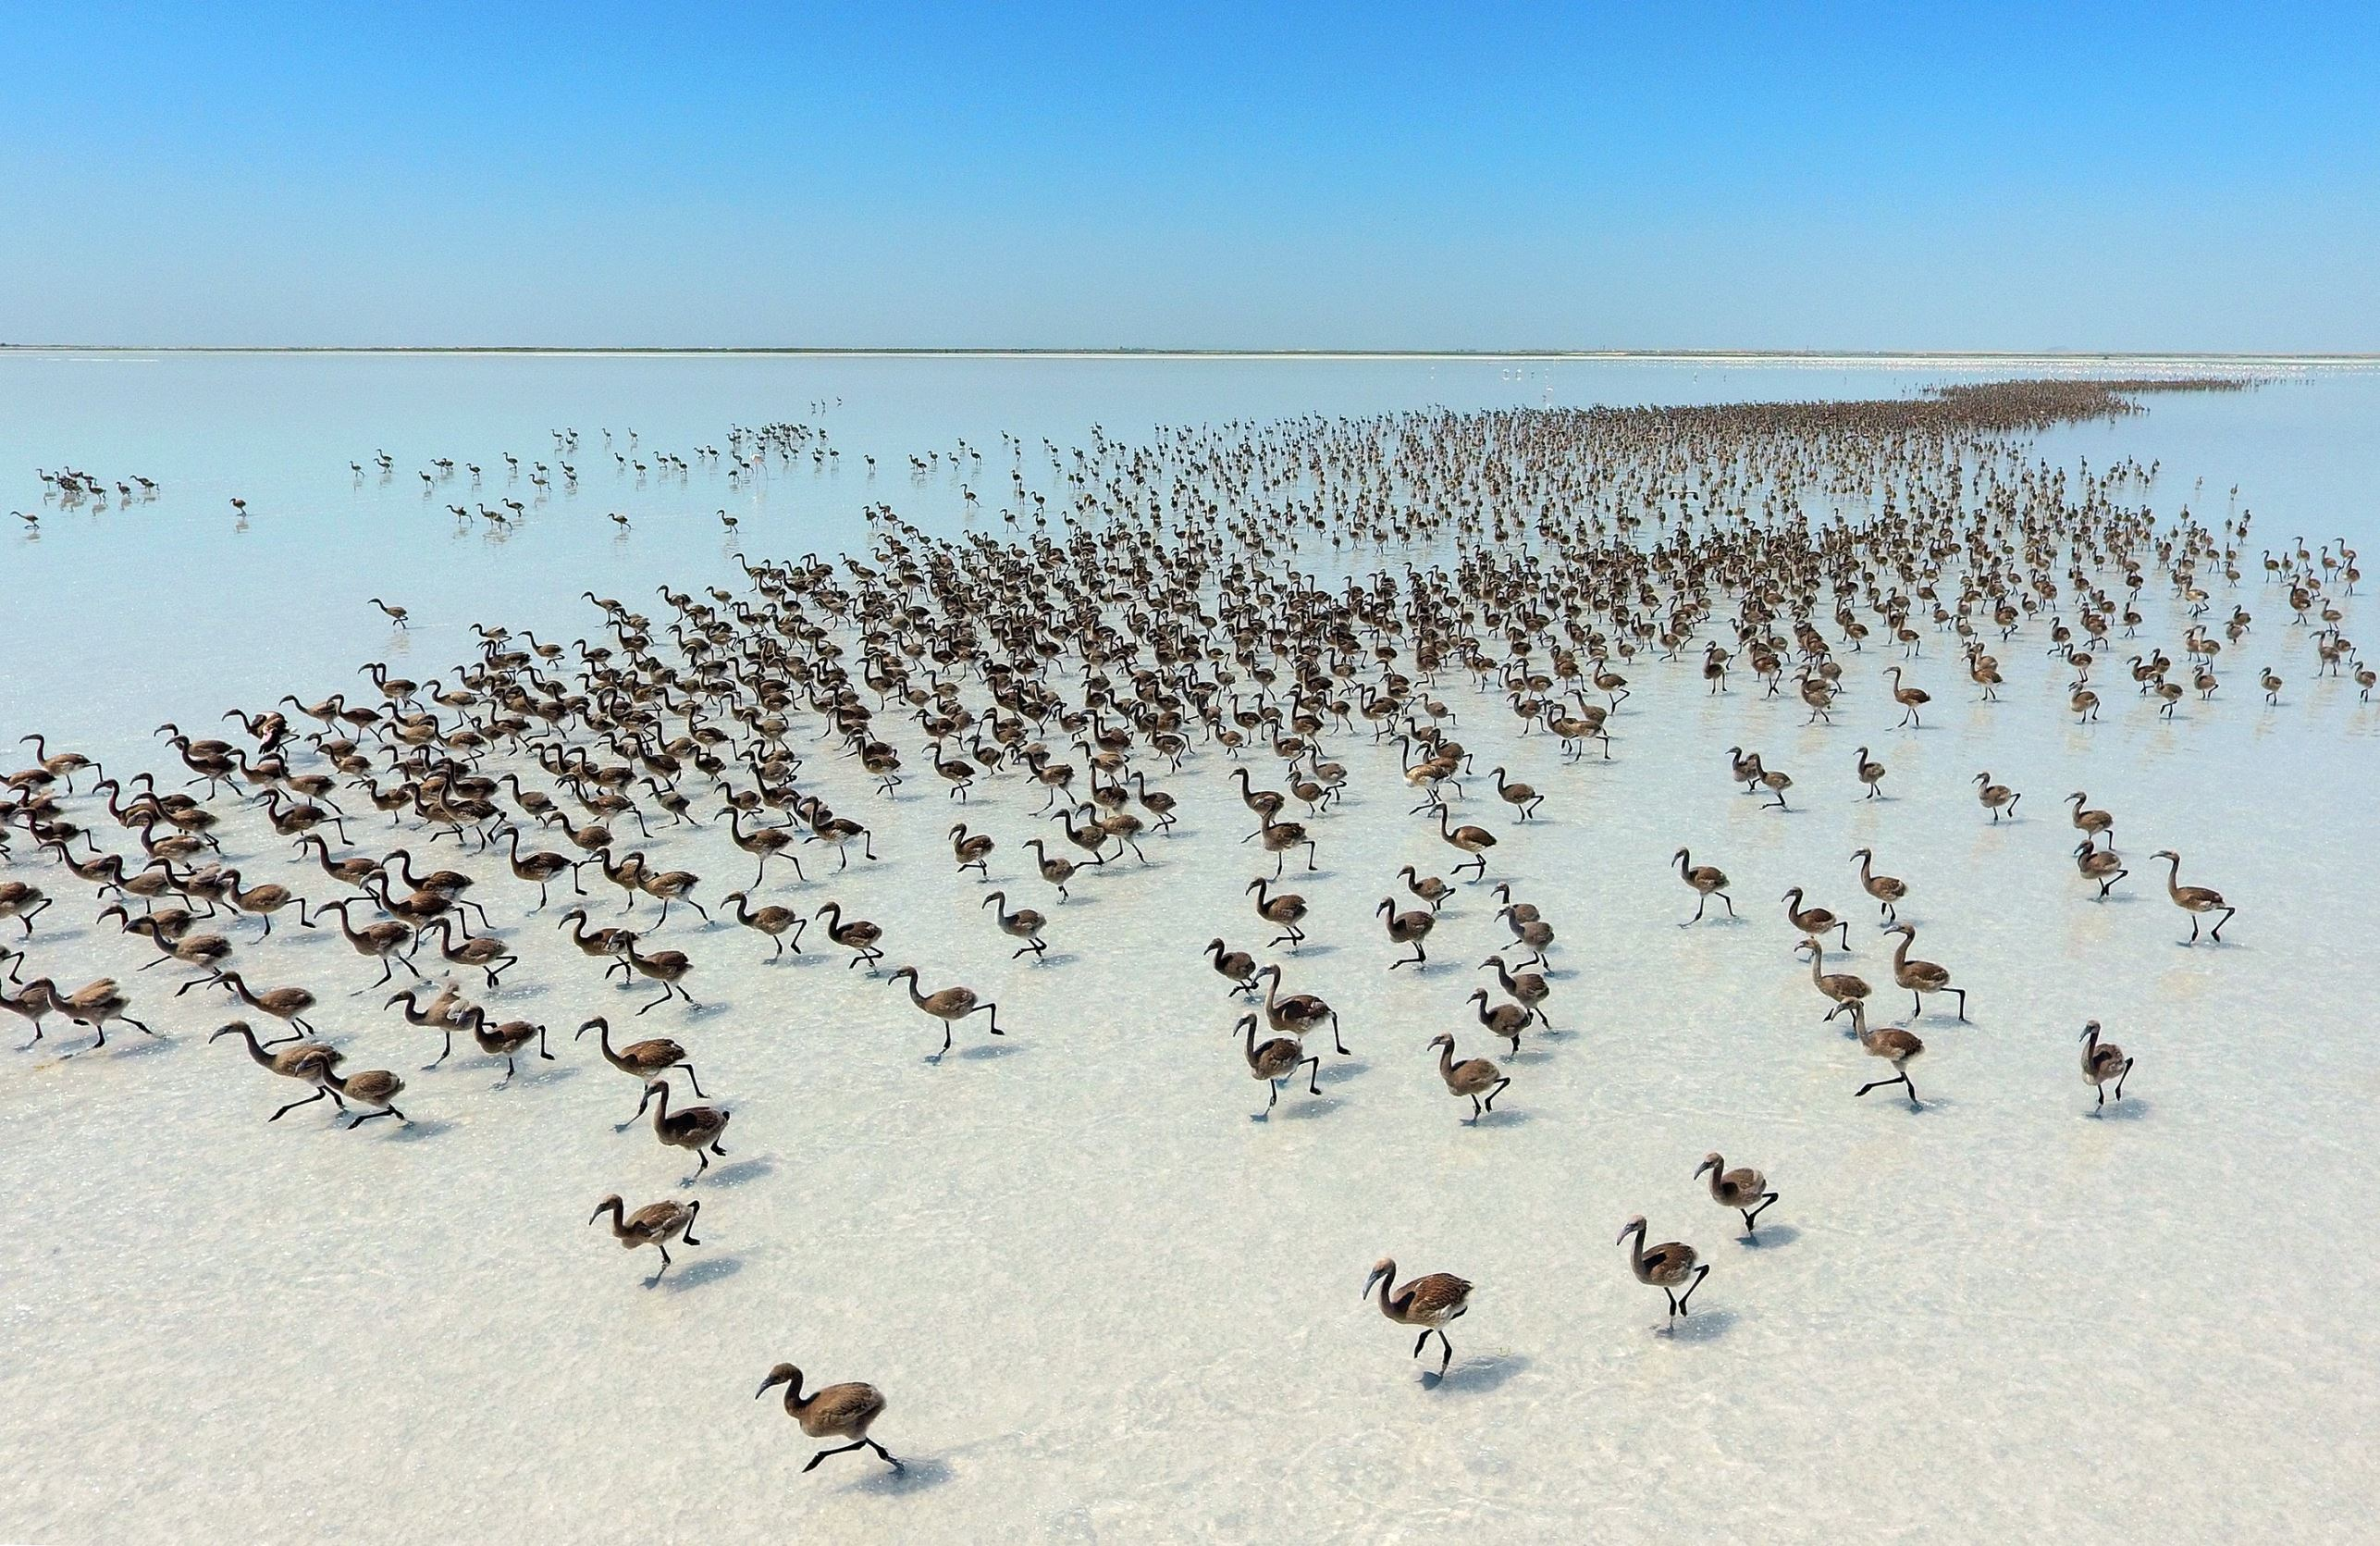 Слайд 27 из 67: AKSARAY, TURKEY - JUNE 28: Flamingos are seen after thousands of flamingo chicks have emerged from their nests at Salt Lake, which is home to the biggest flamingo colony in Turkey and the Mediterranean basin, in Aksaray, Turkey on June 28, 2016.  (Photo